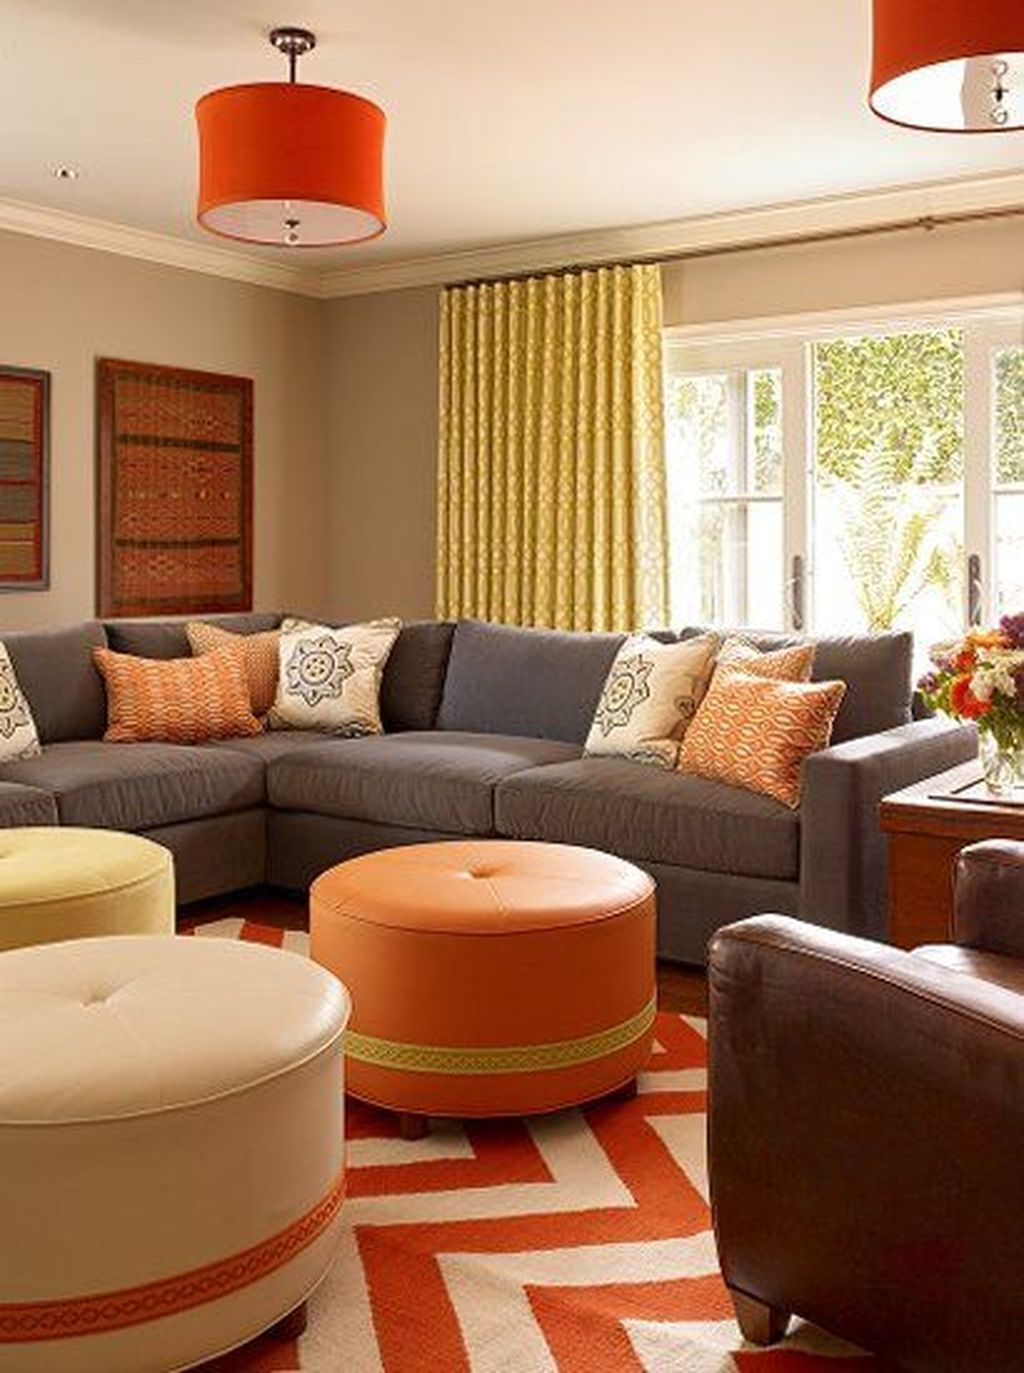 10 Stunning Orange And Brown Living Room Ideas